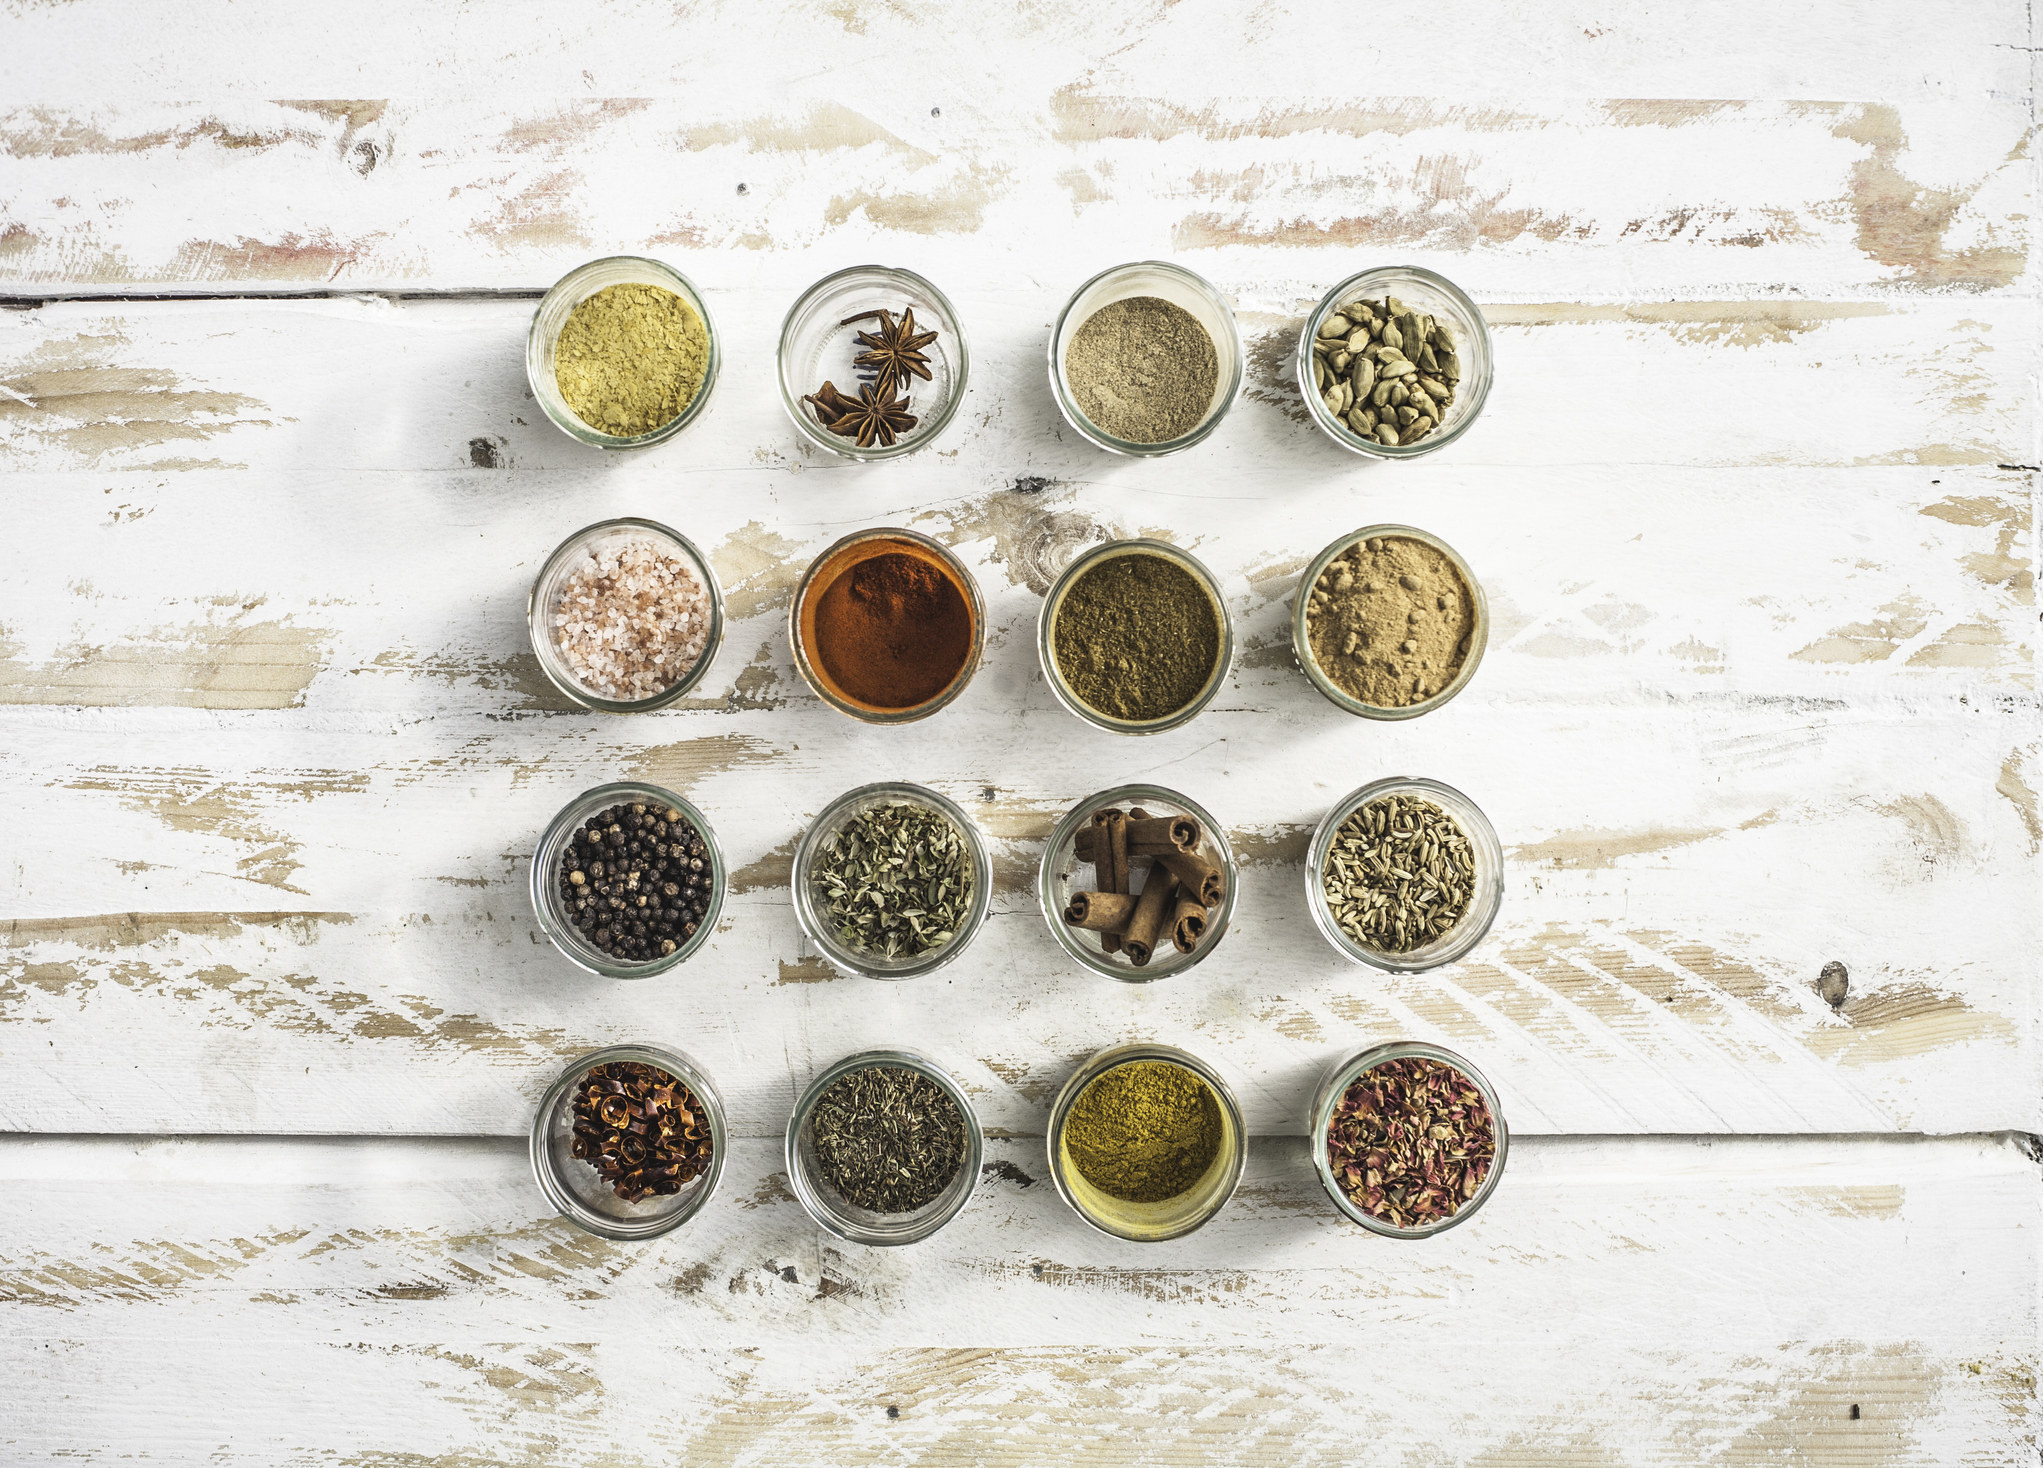 Different spices in small glass bowls.